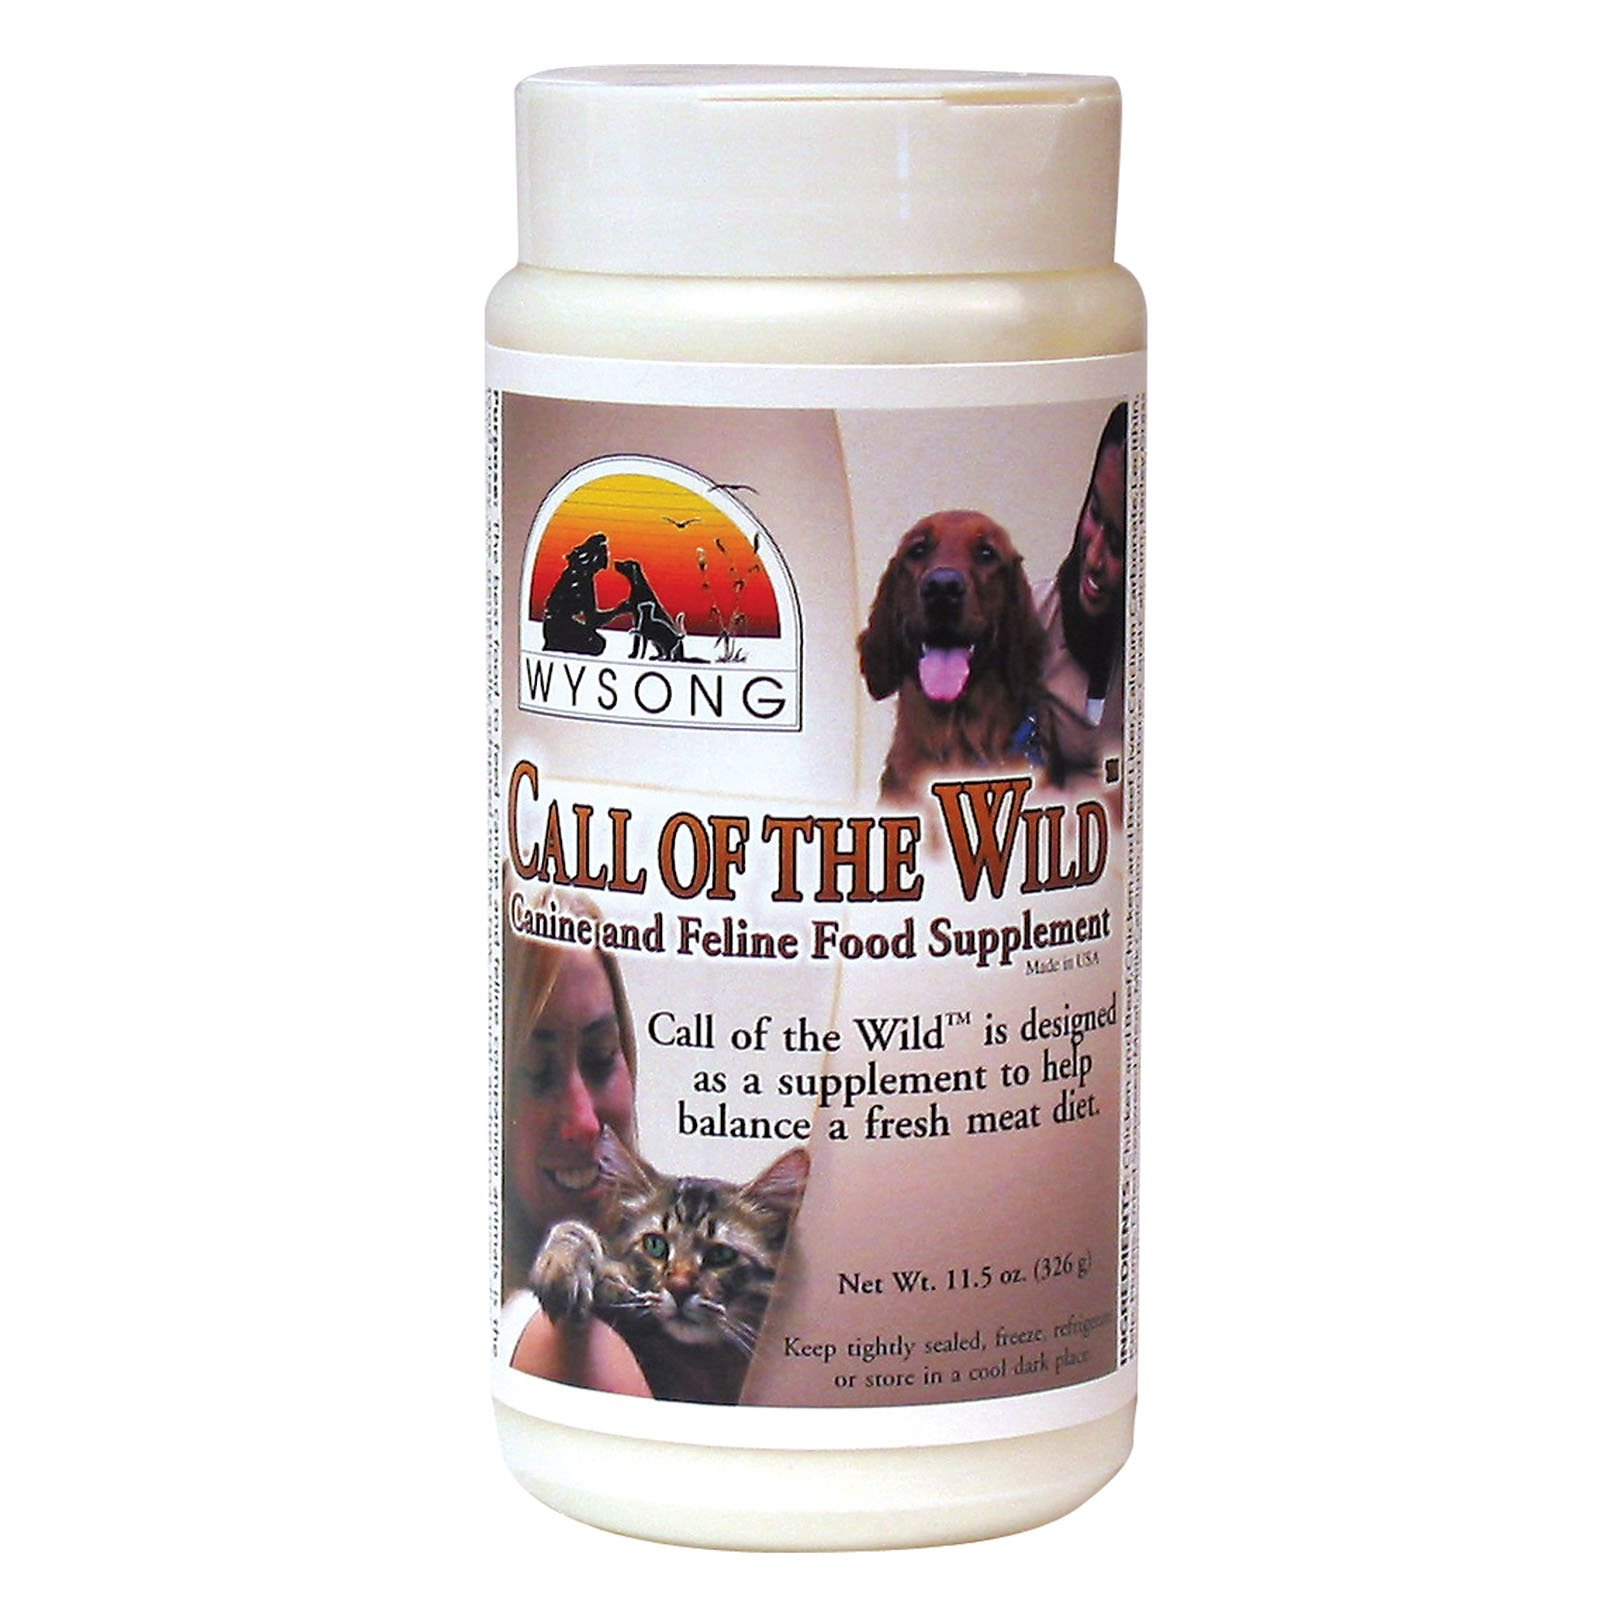 WYSONG PET NUTRITIONAL PRODUCTS 858385 Call of the Wild Canine and Feline Food Supplement for Pets, 11-Ounce